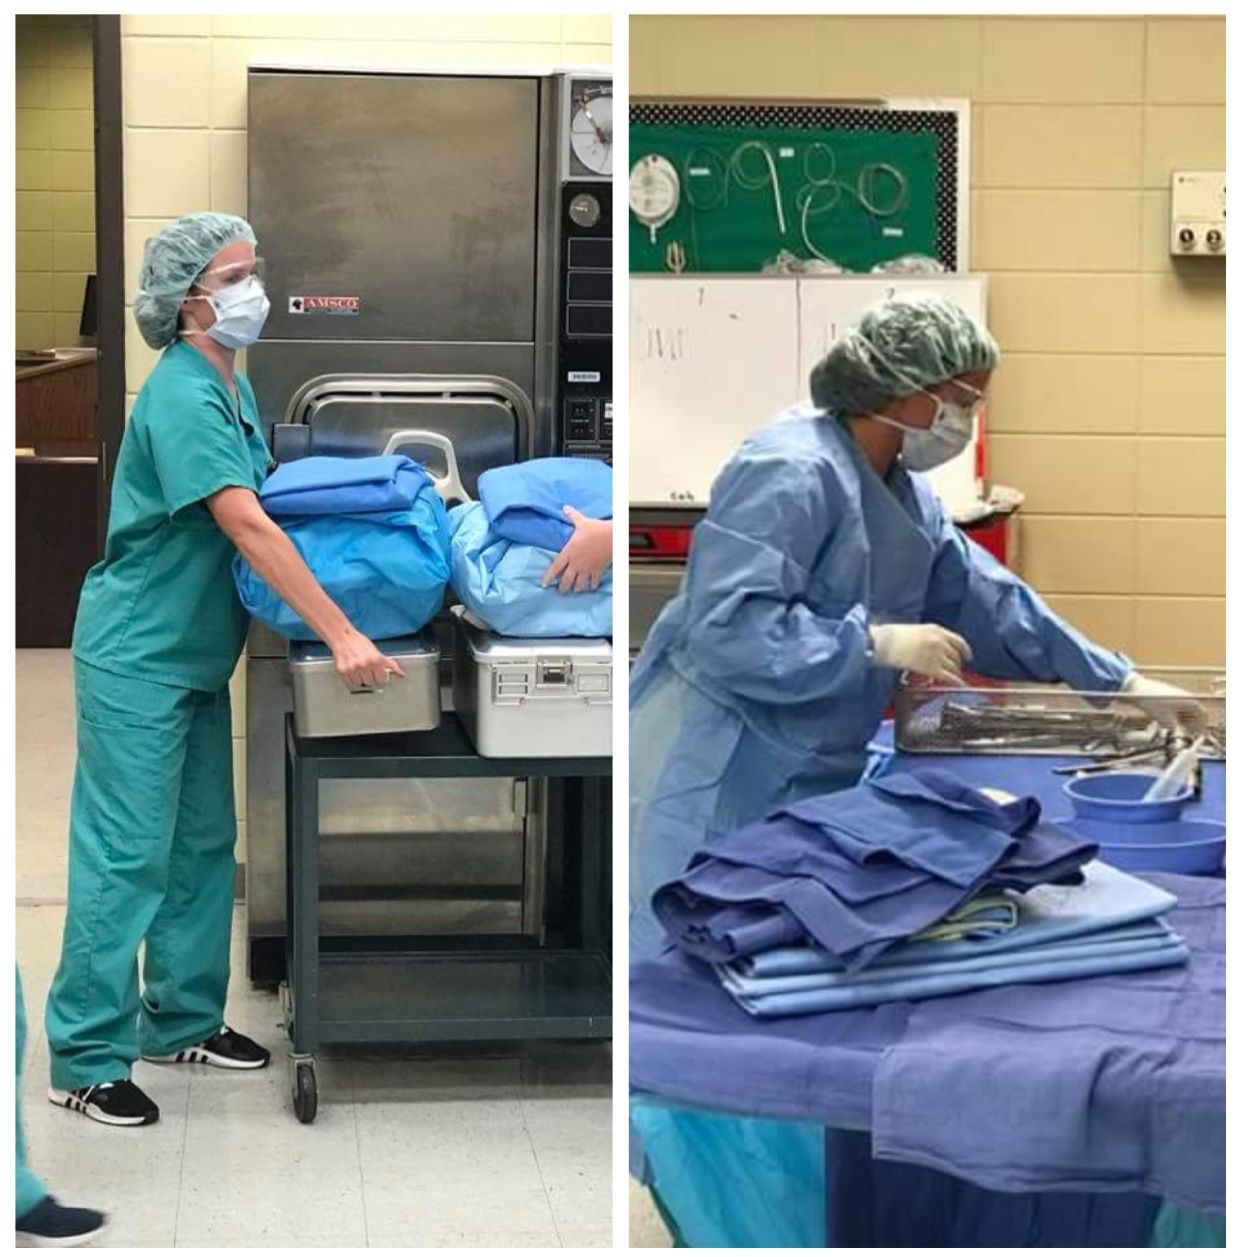 Getting Equipment Setting Up My Back Table Field For Gen Surg Operating Room Nurse Humor Operating Room Nurse Surgical Technologist